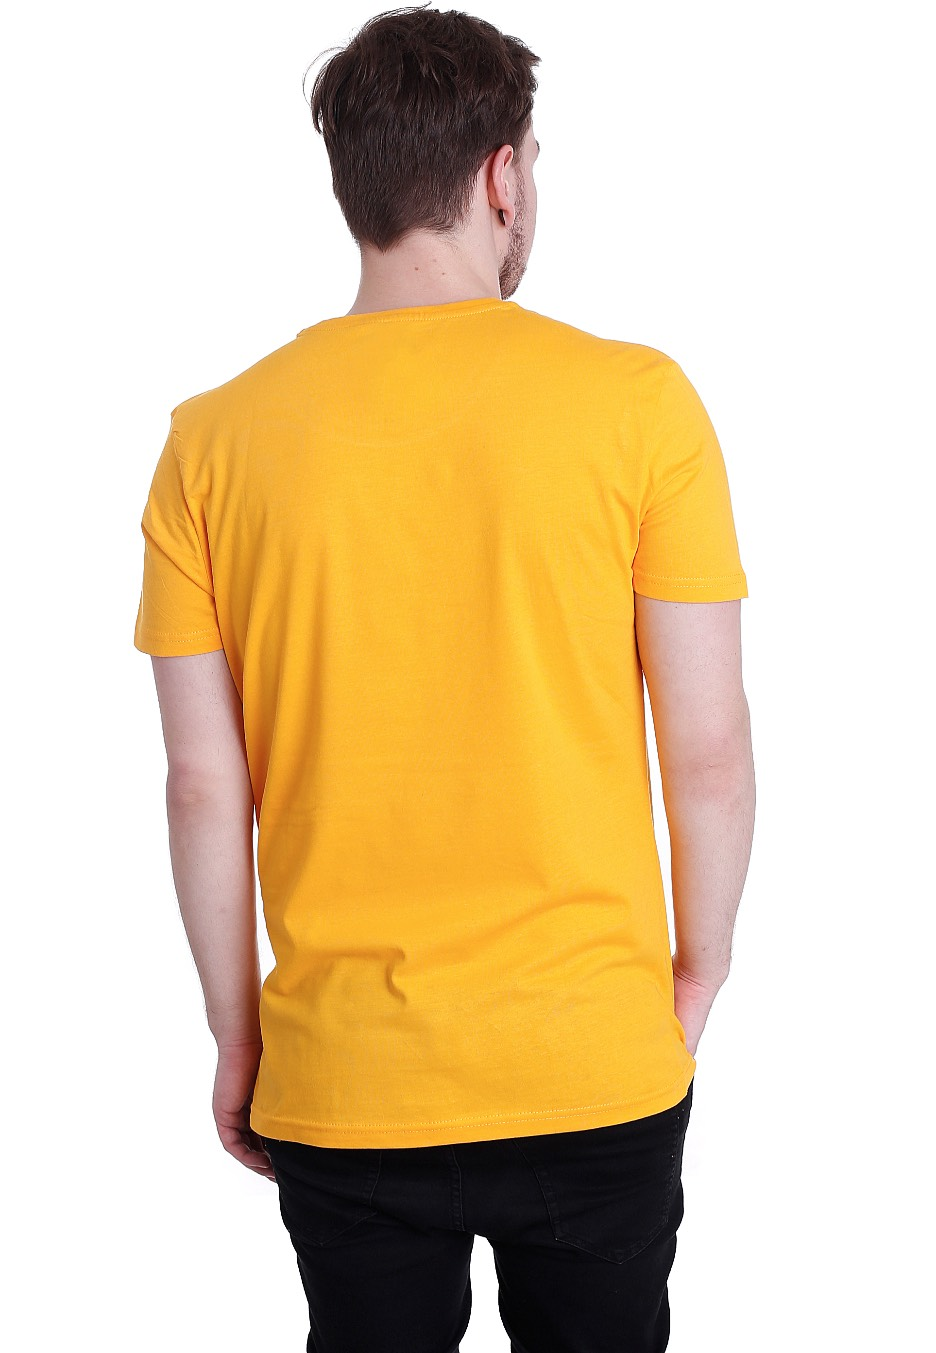 Shirt t Yellow back rare photo